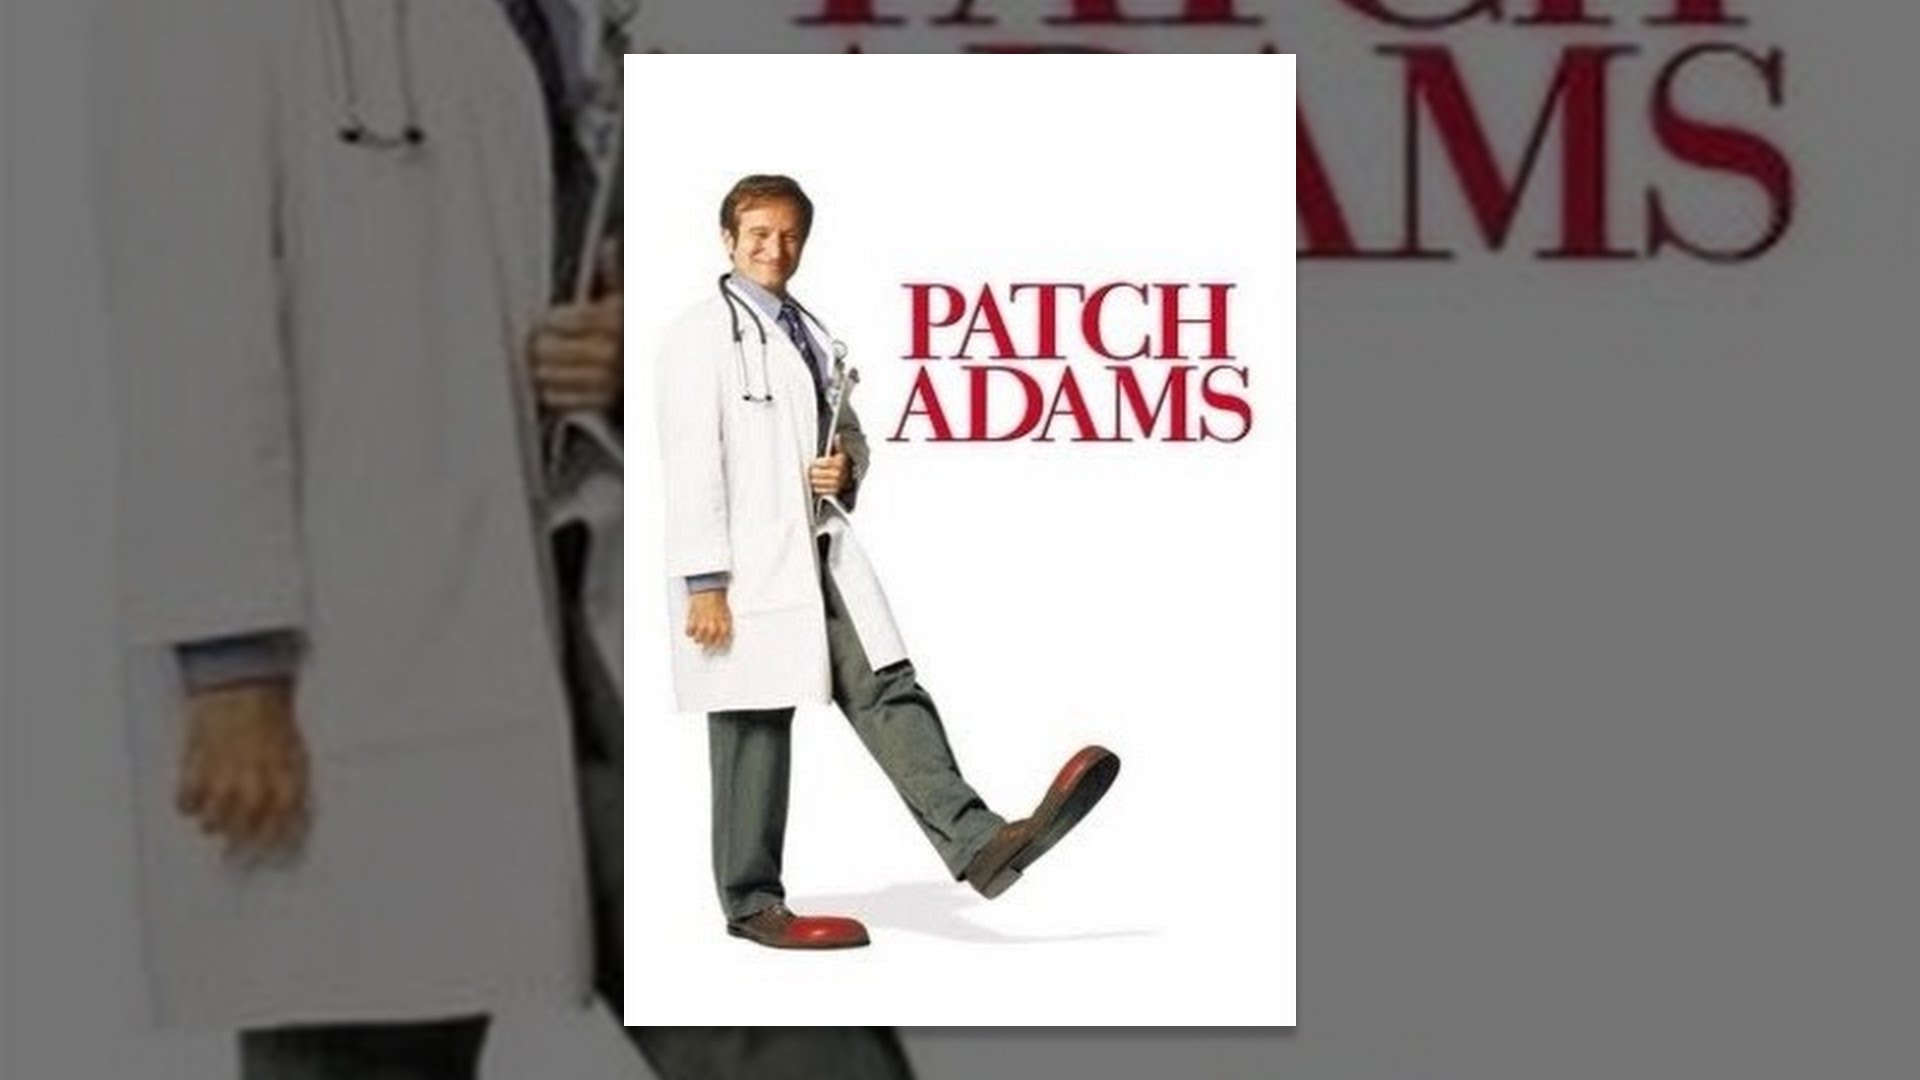 Patch Adams Patch Adams Movie Graduation Scene